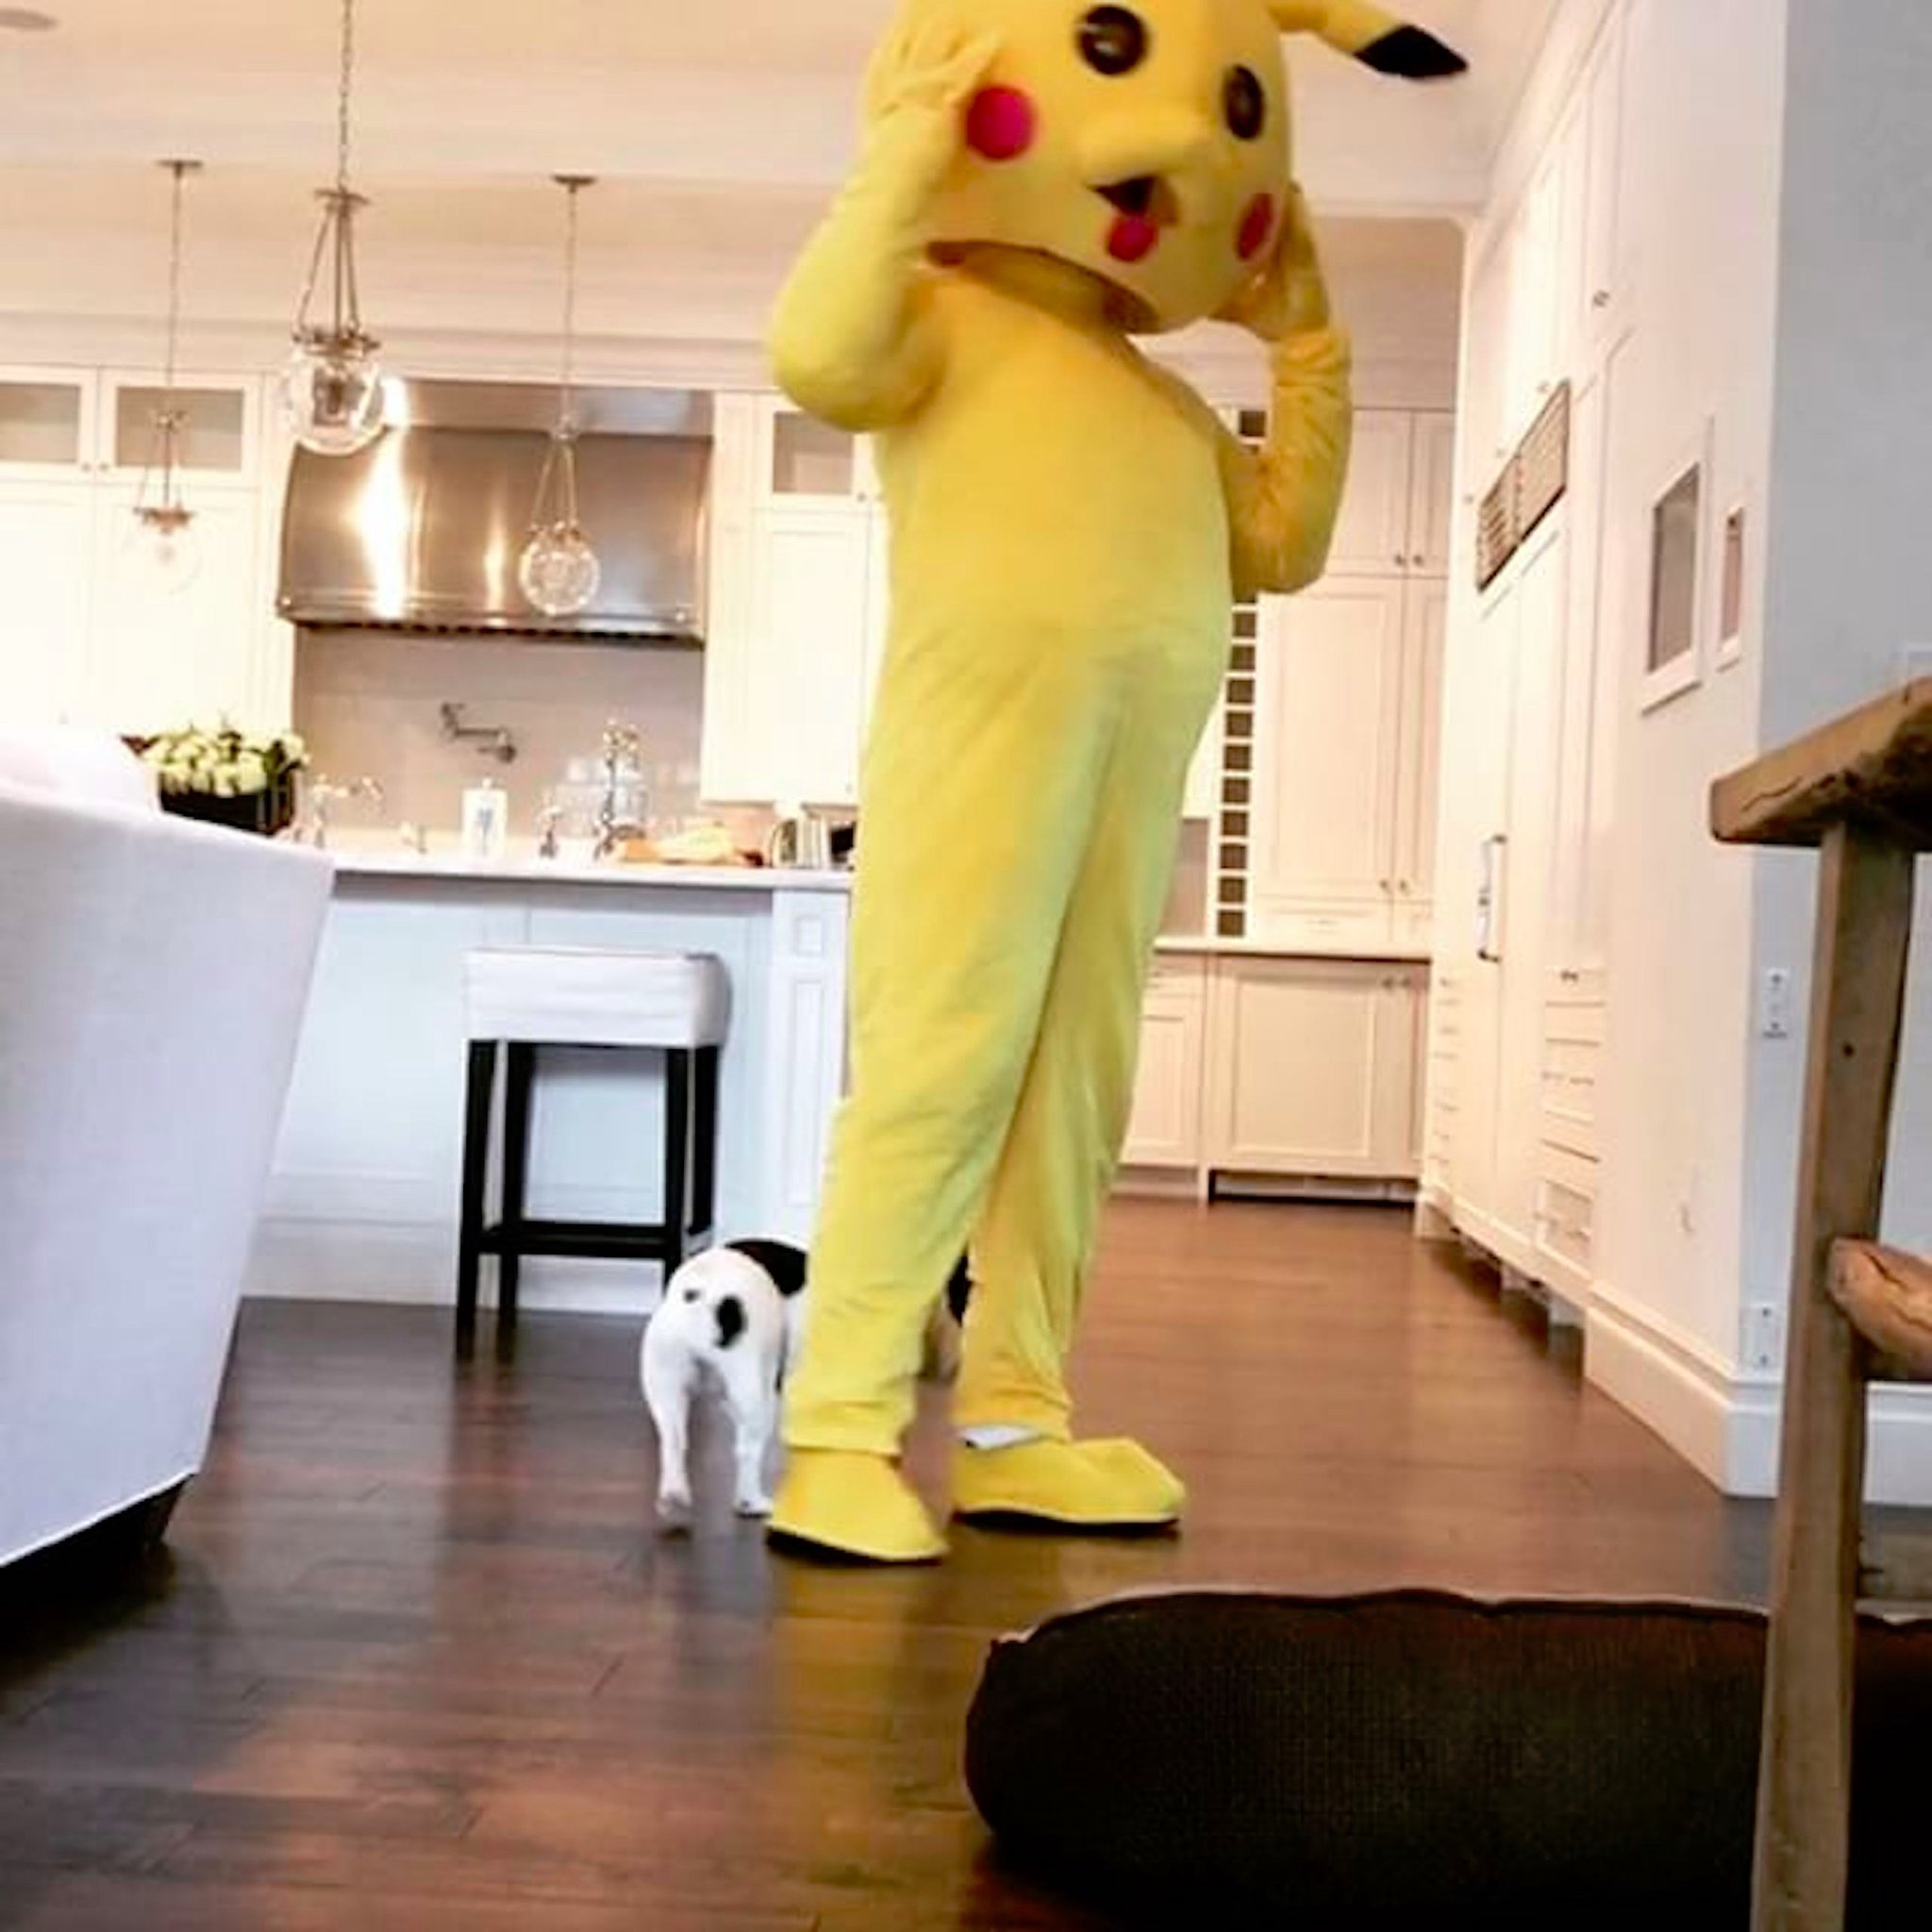 Dwayne-Johnson-Dresses-Up-Pikachu-Daughter-Easter